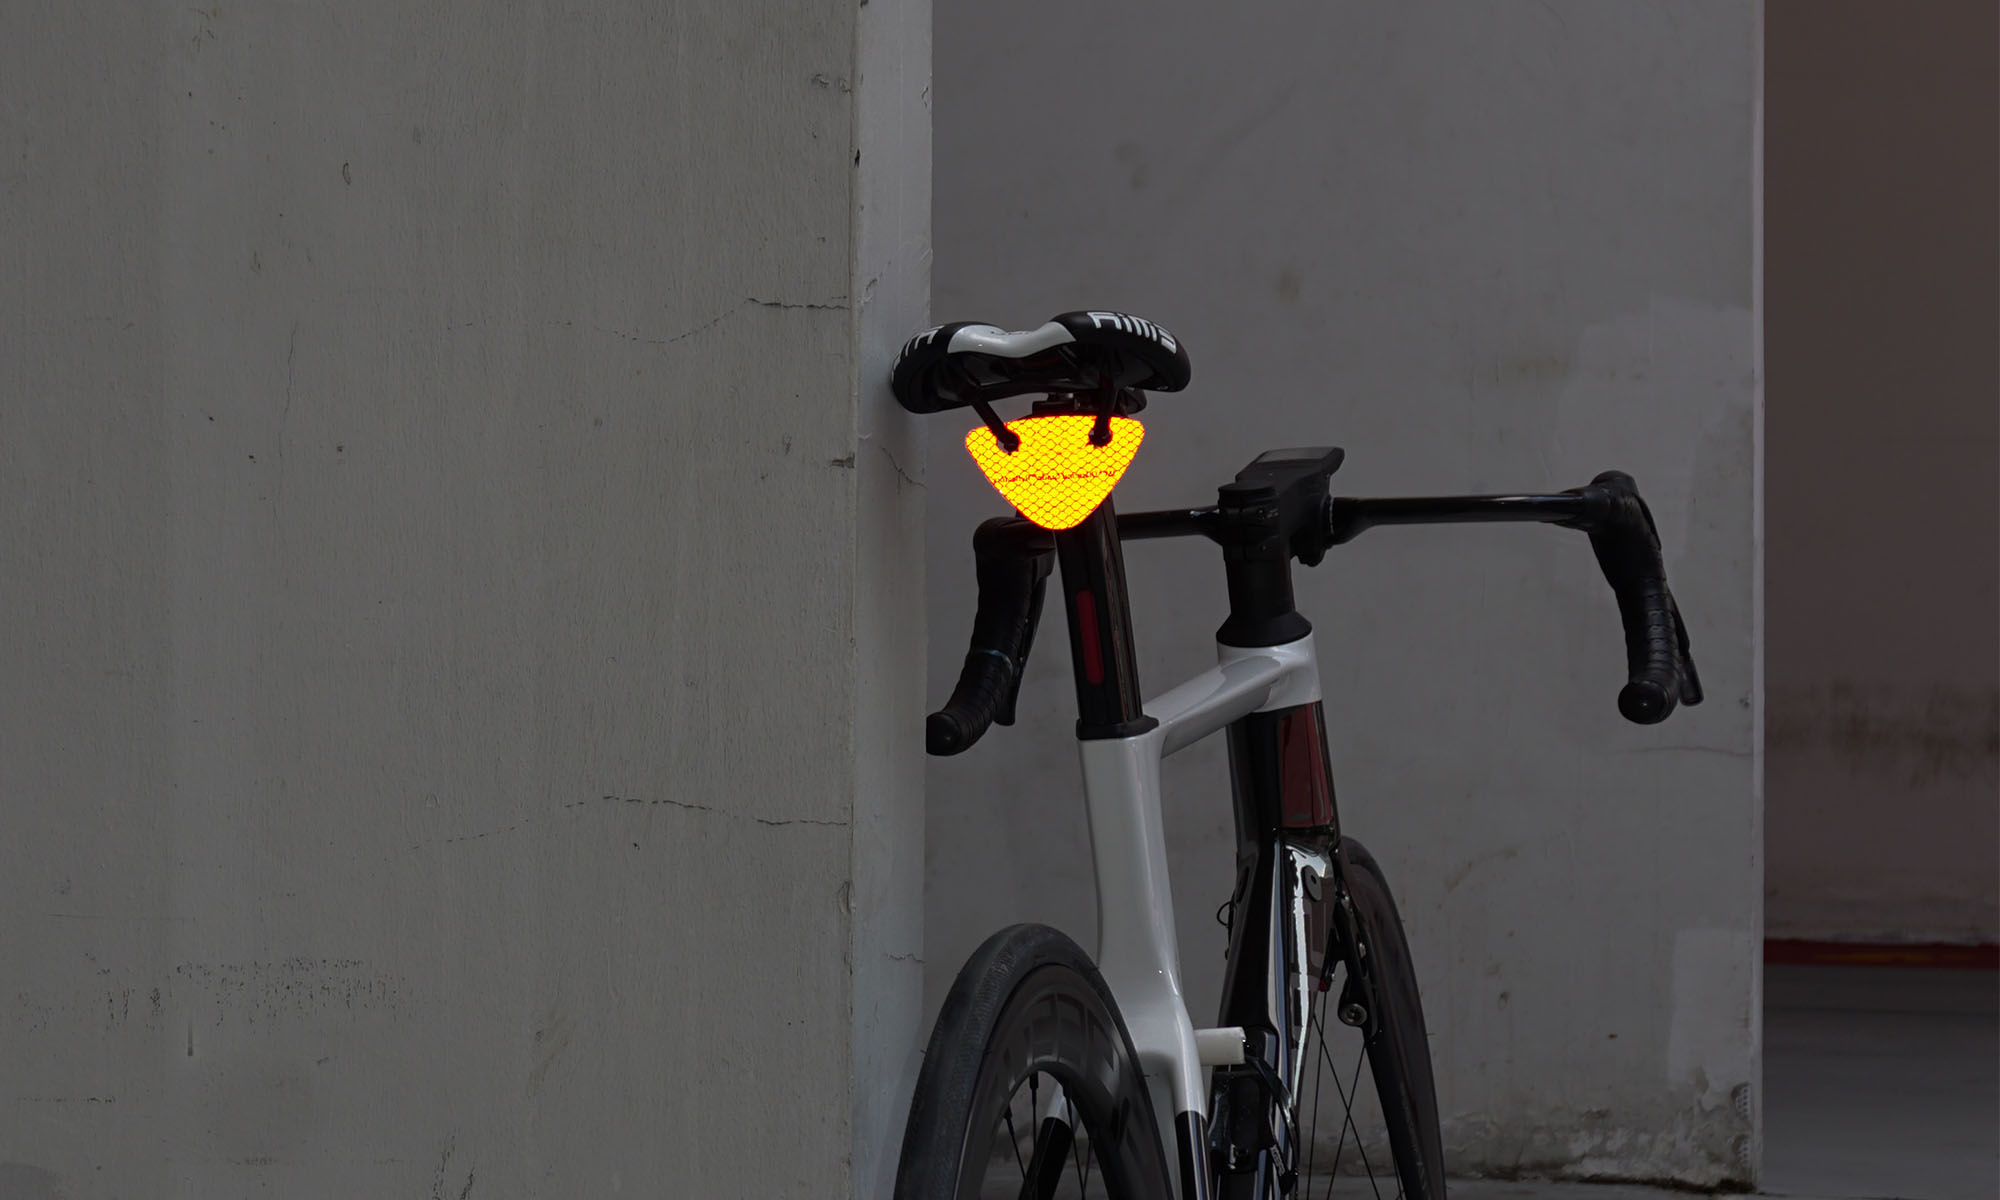 When the bicycle light dies, Blincclip shines